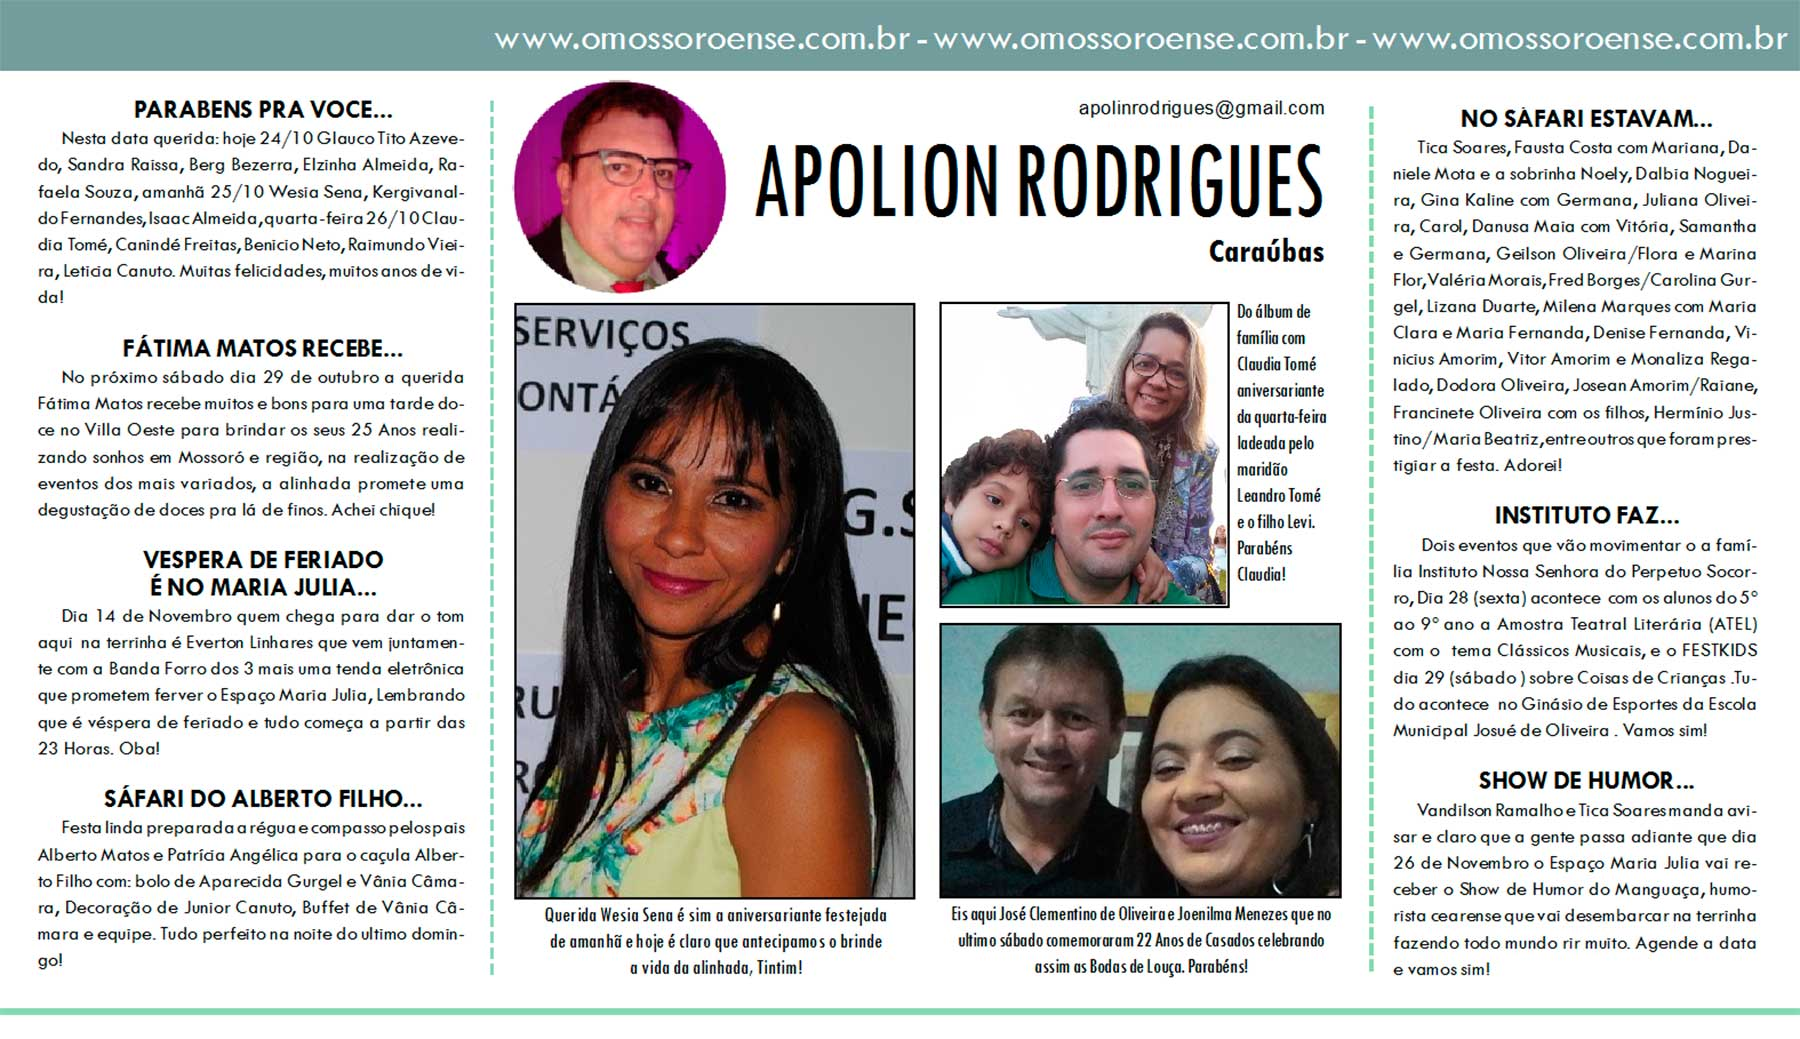 apolion-rodrigues-24-10-2016